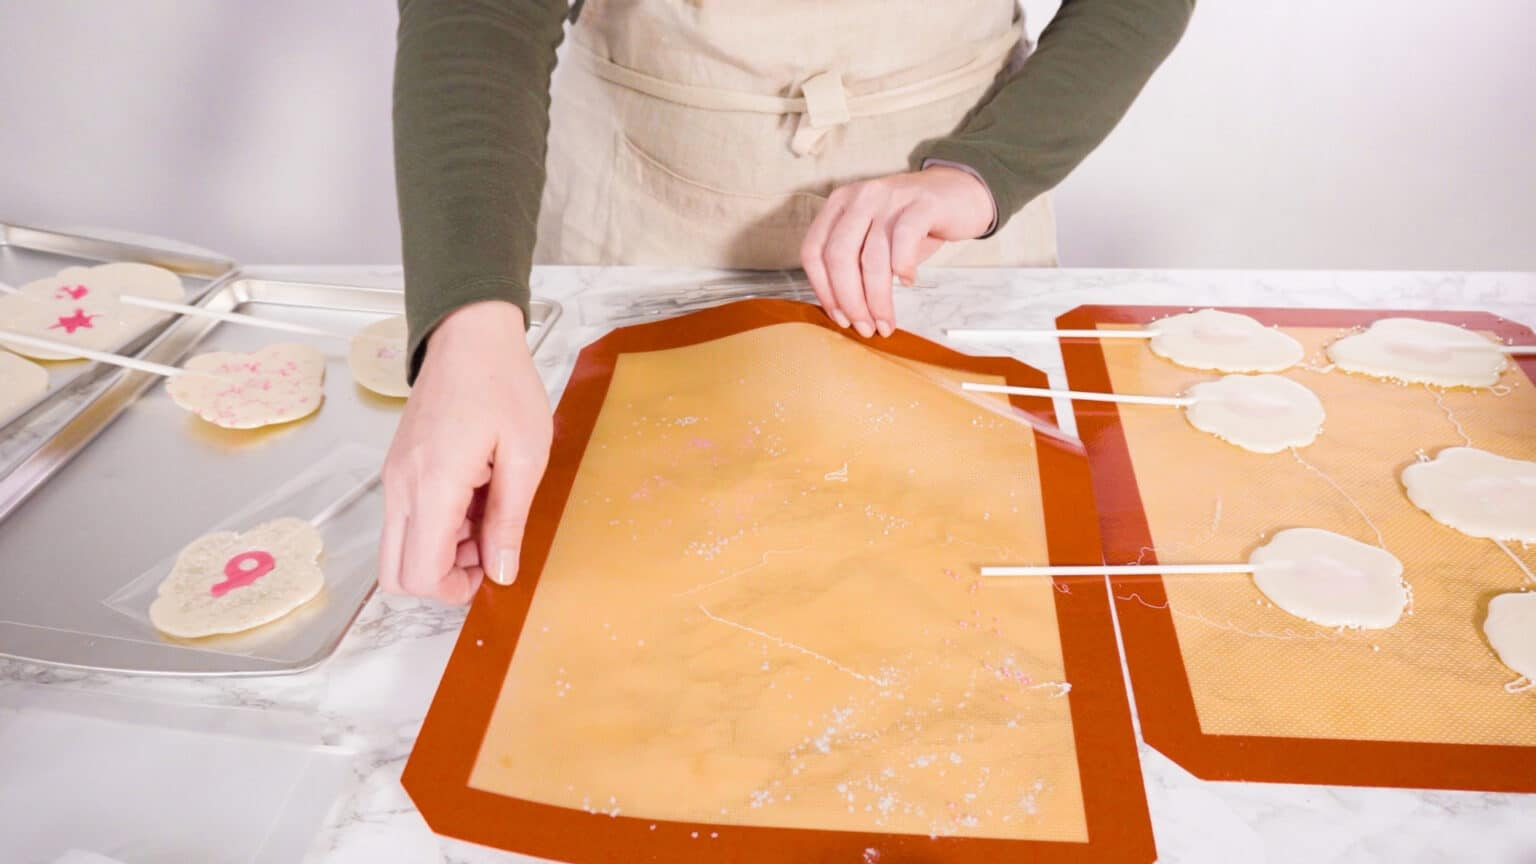 How to Choose a Silicone Mat for The Oven